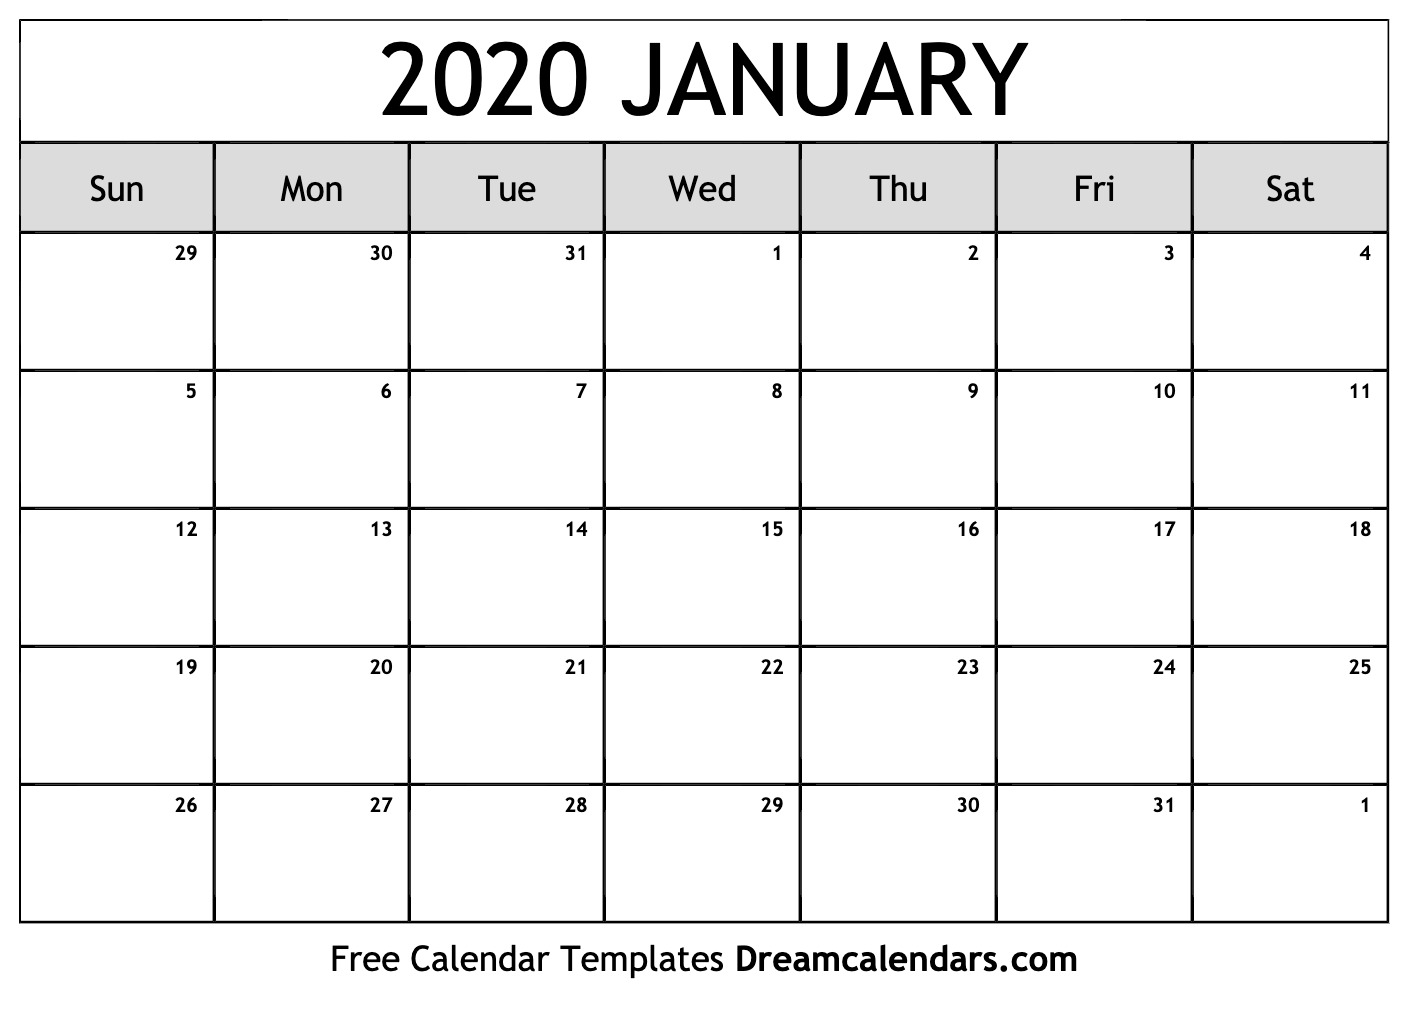 Fill In The Blank Calendar December 2020- January 2020 Printable January 2020 Calendar